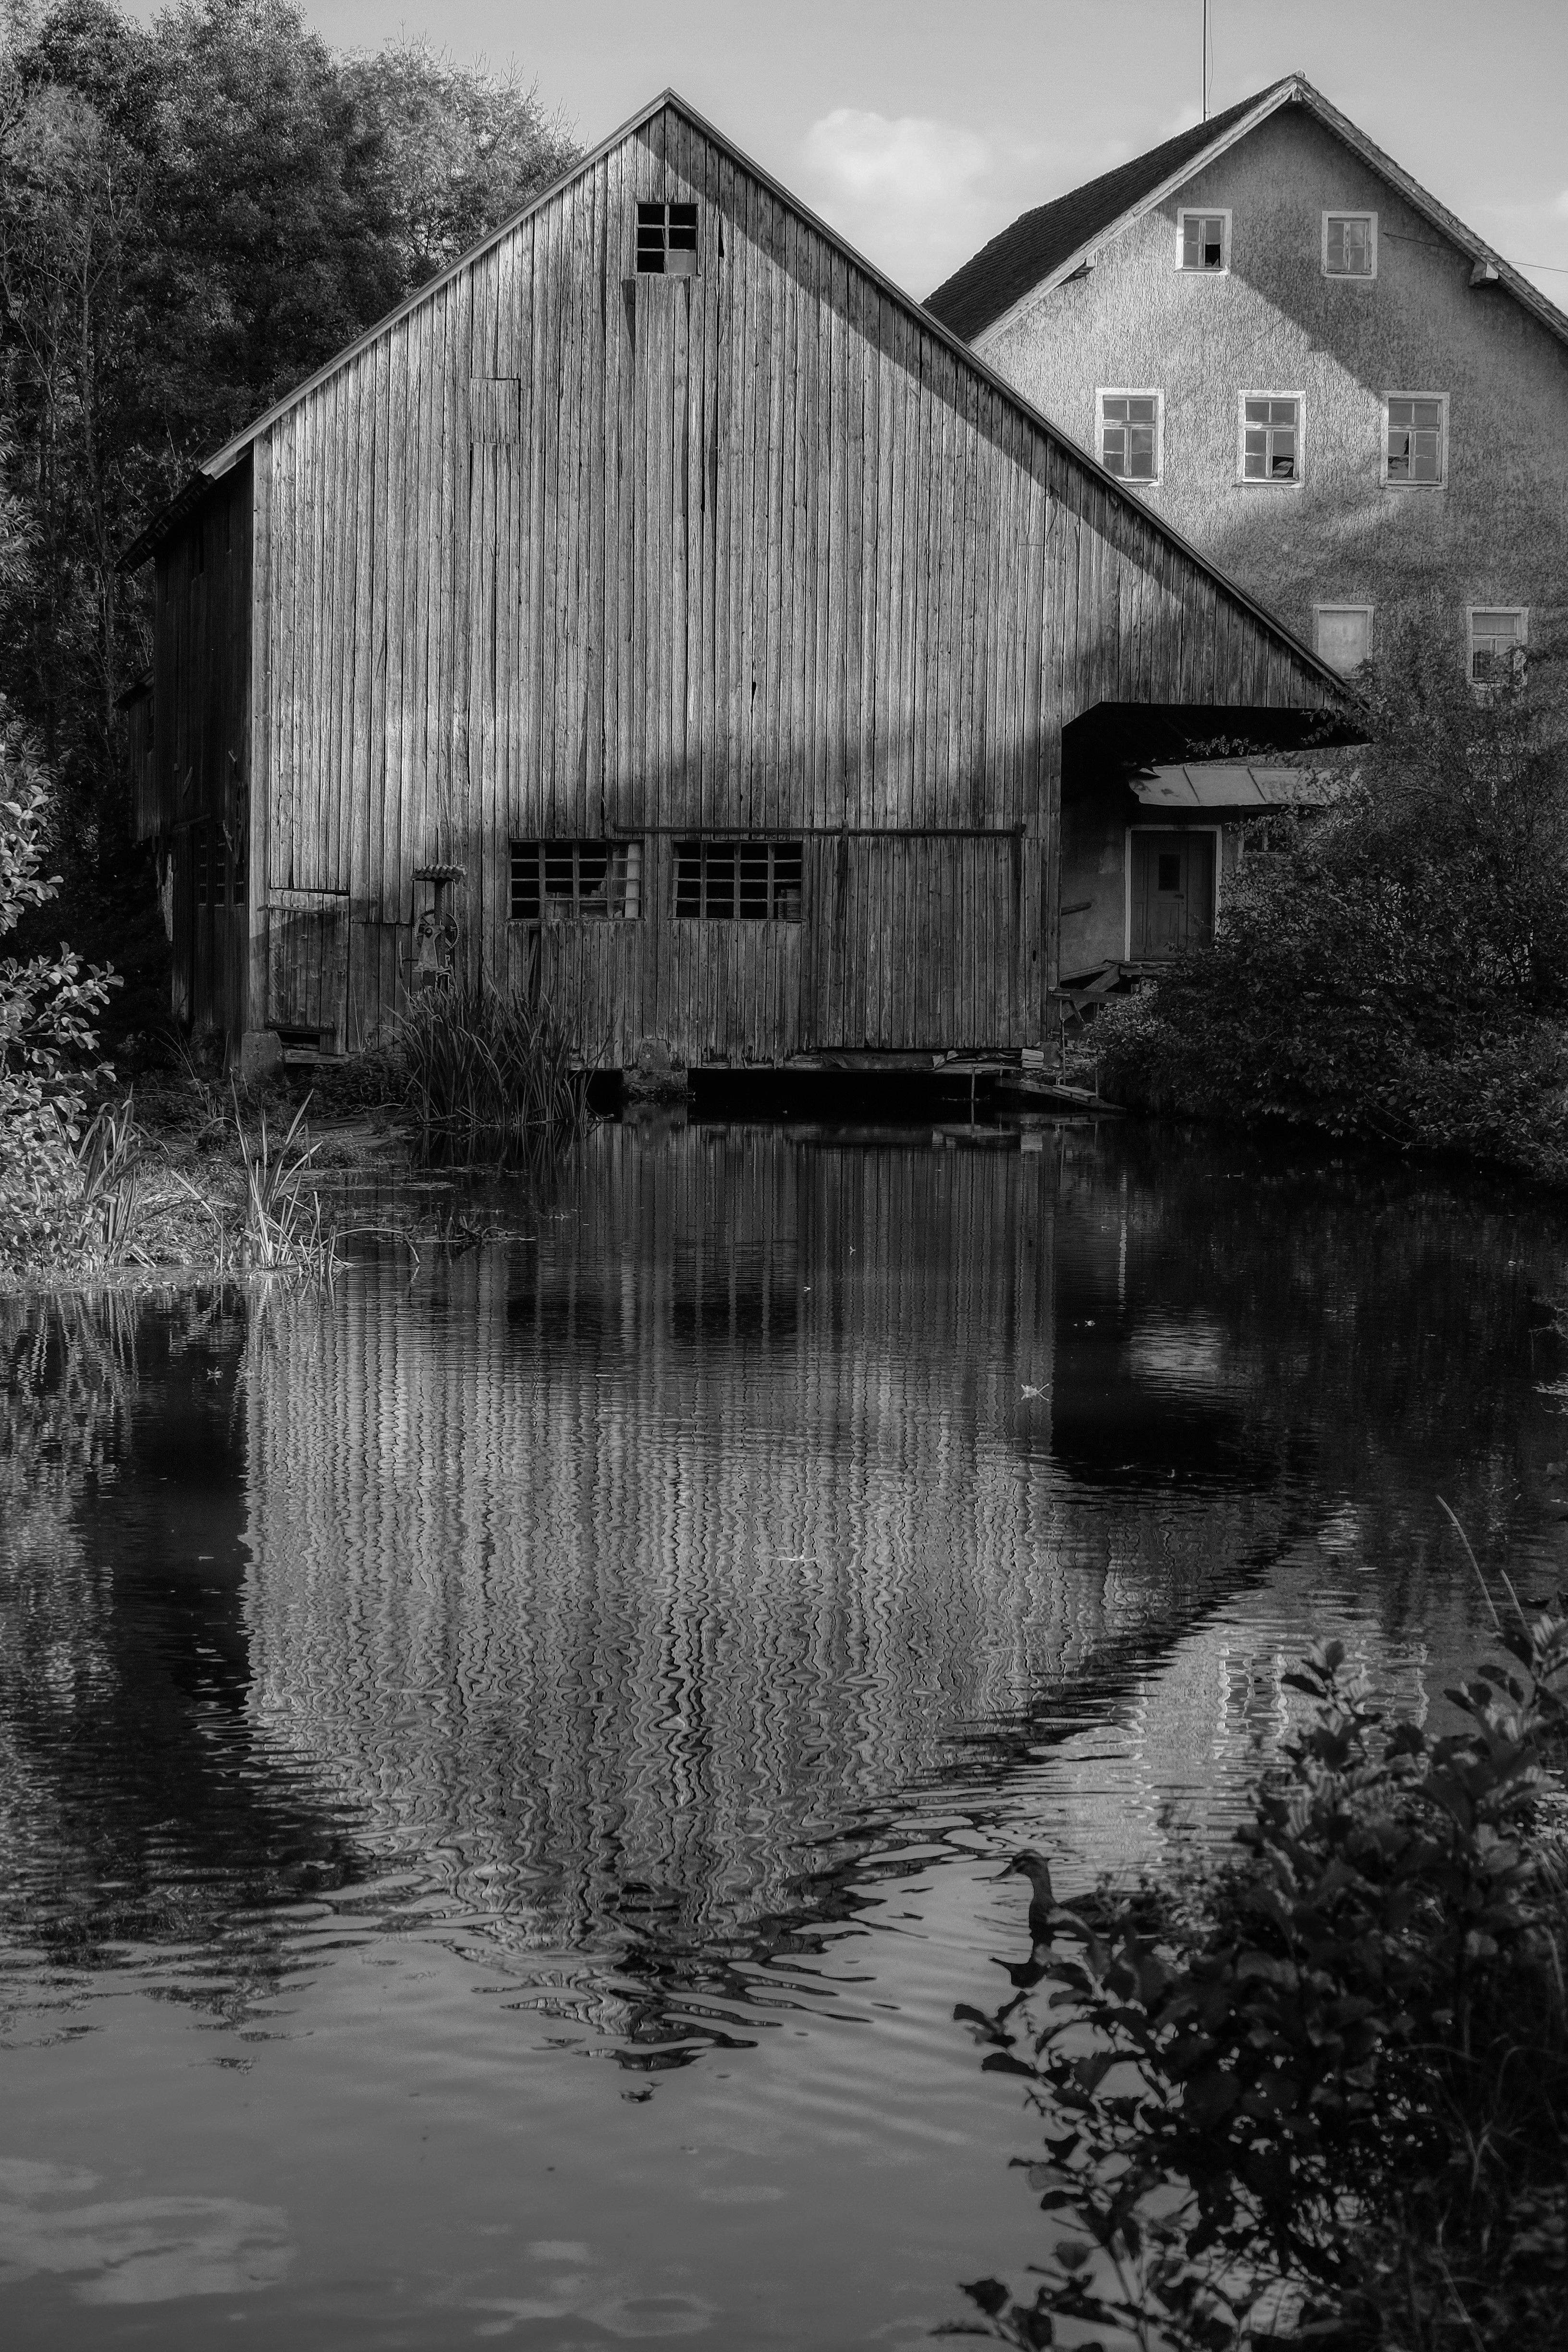 Niedermühle / Lower Mill